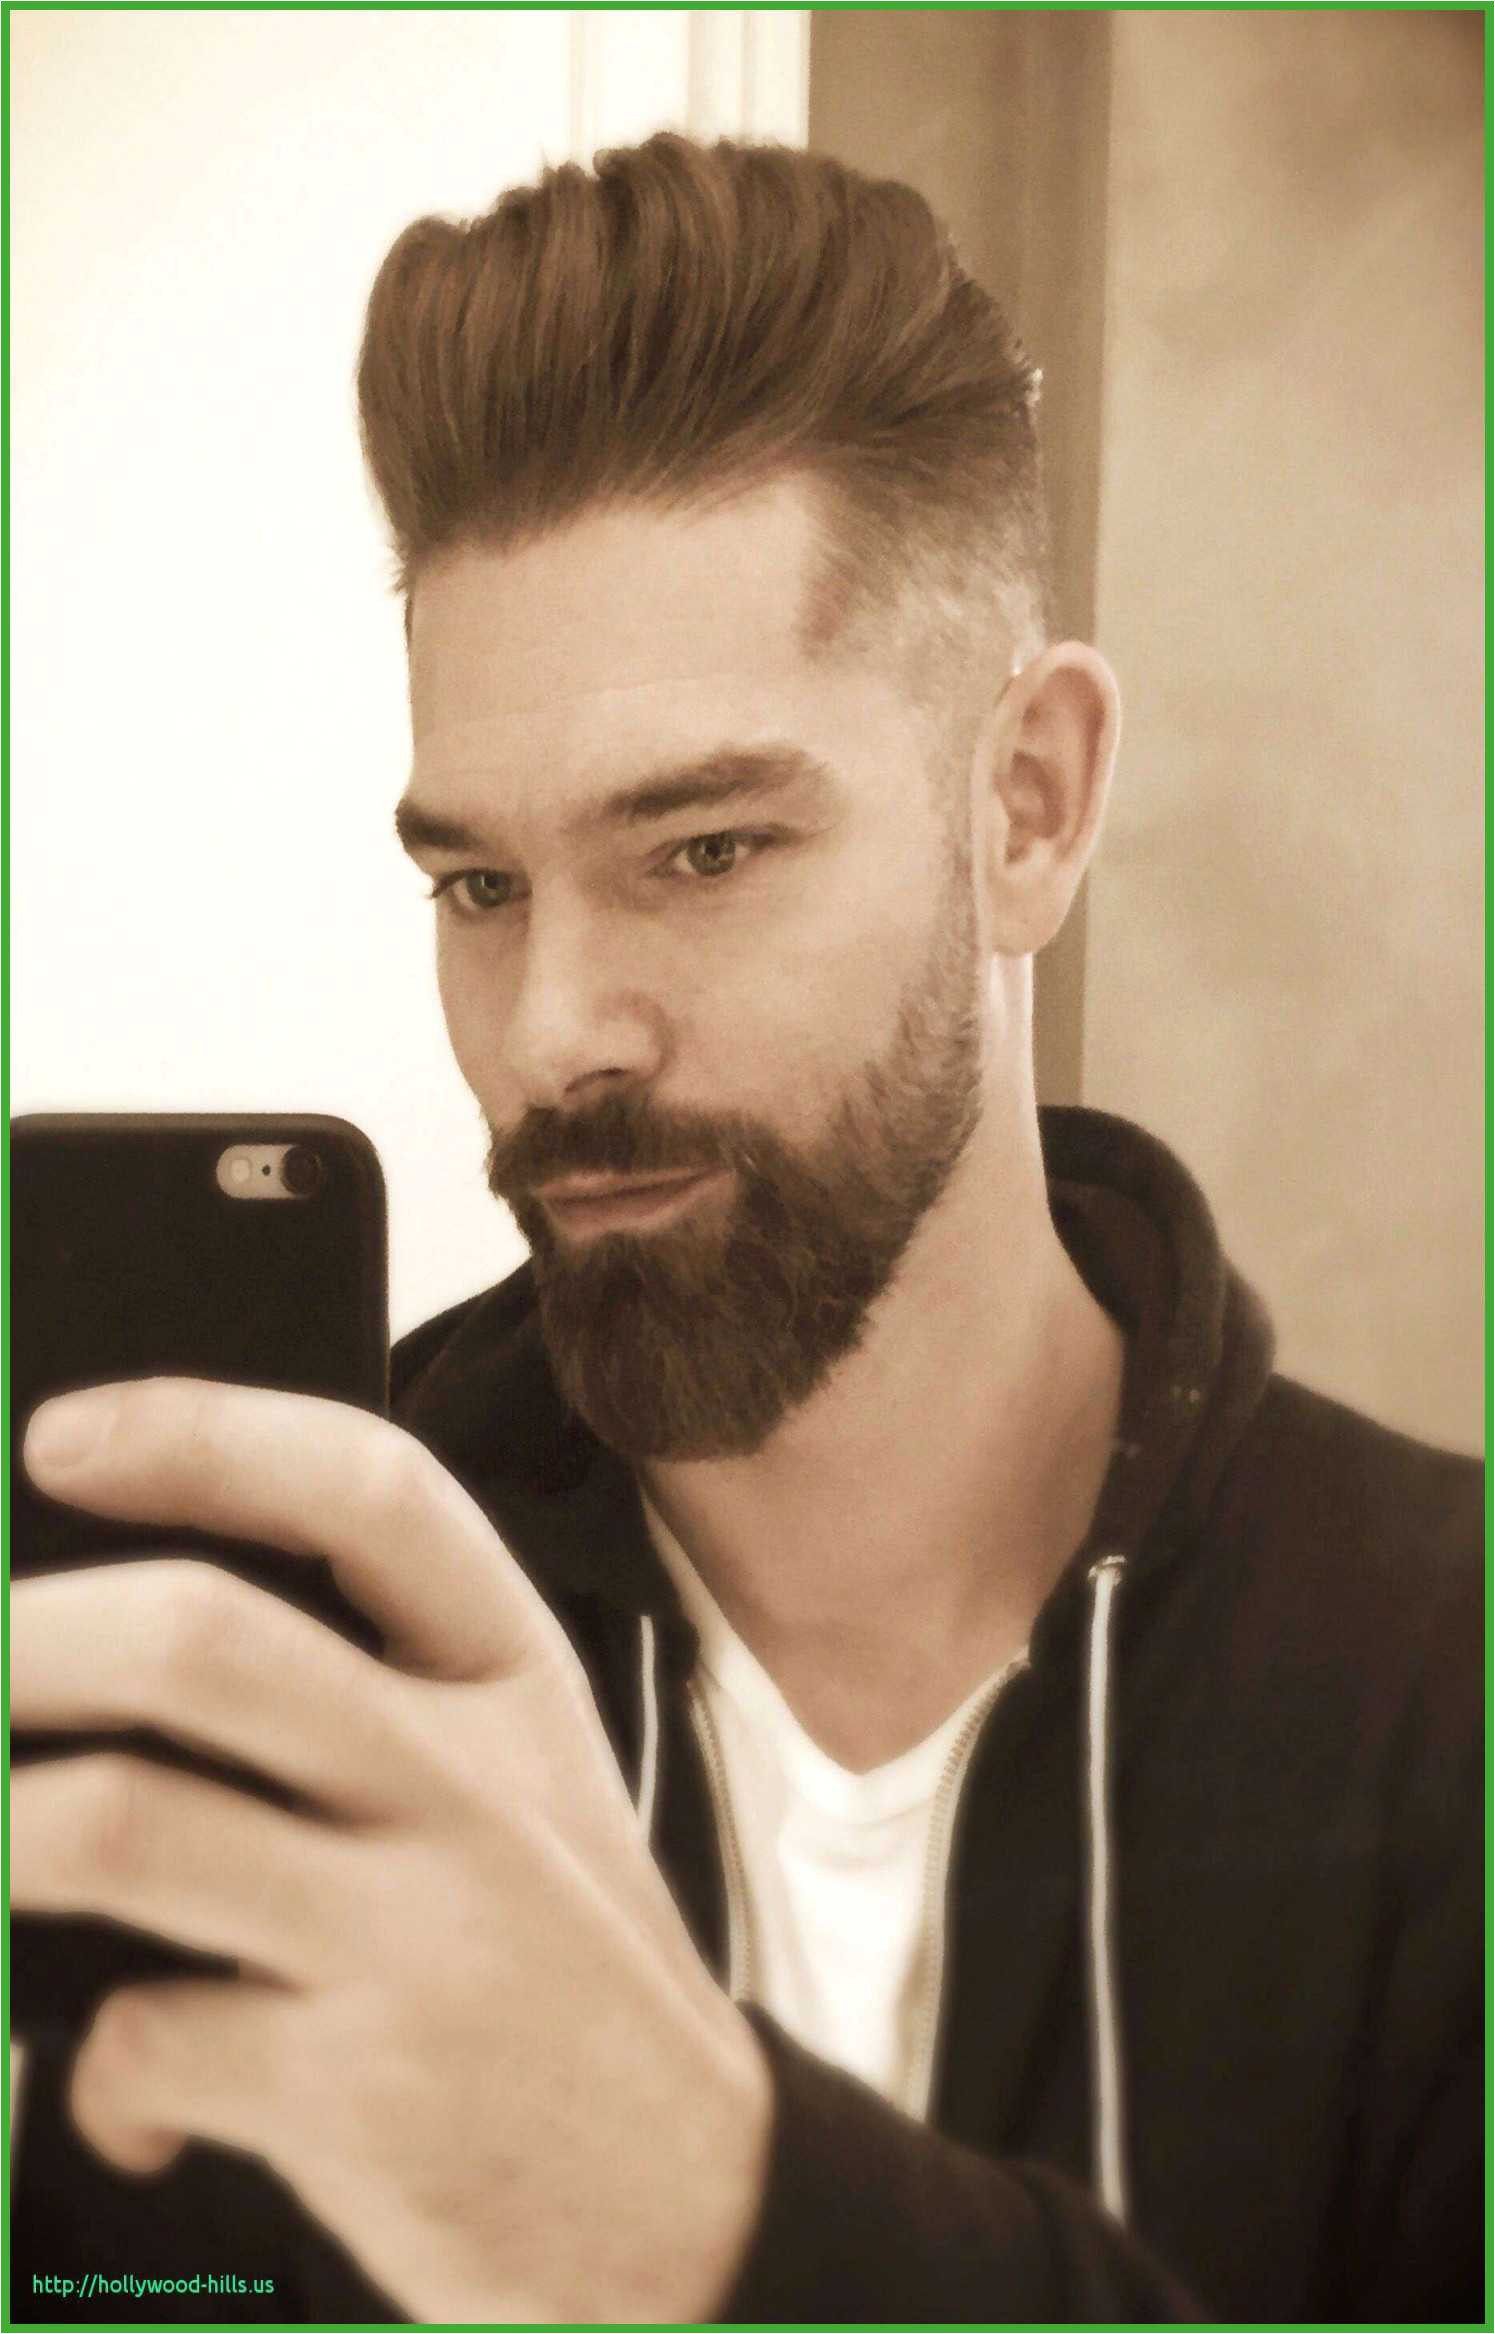 Curly Hair Trend In Accordance With Gym Hairstyles Male New Hairstyles For Men Luxury Haircuts 0d